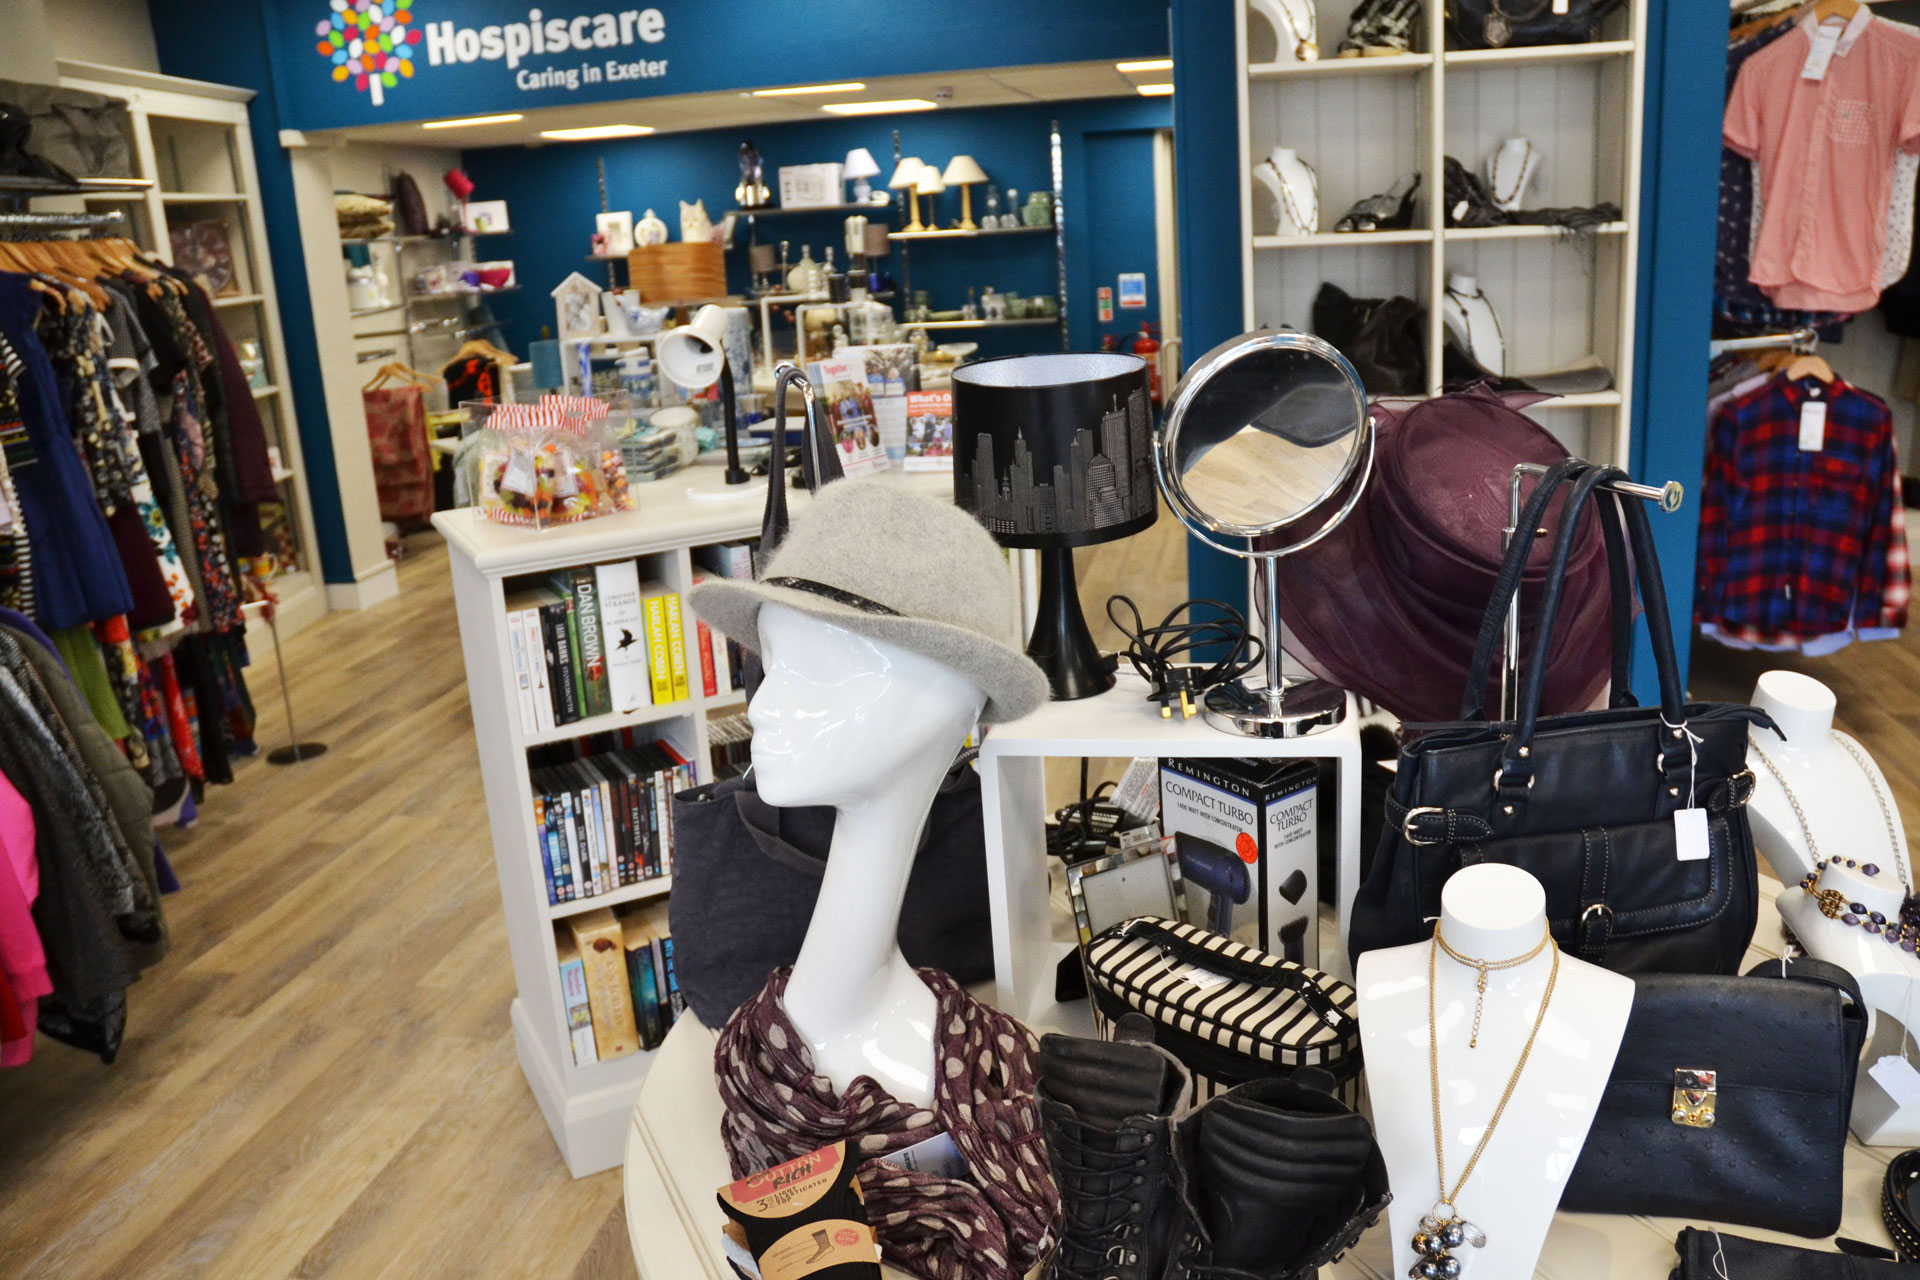 Re-opening our Hospiscare shops: How we are doing this safely